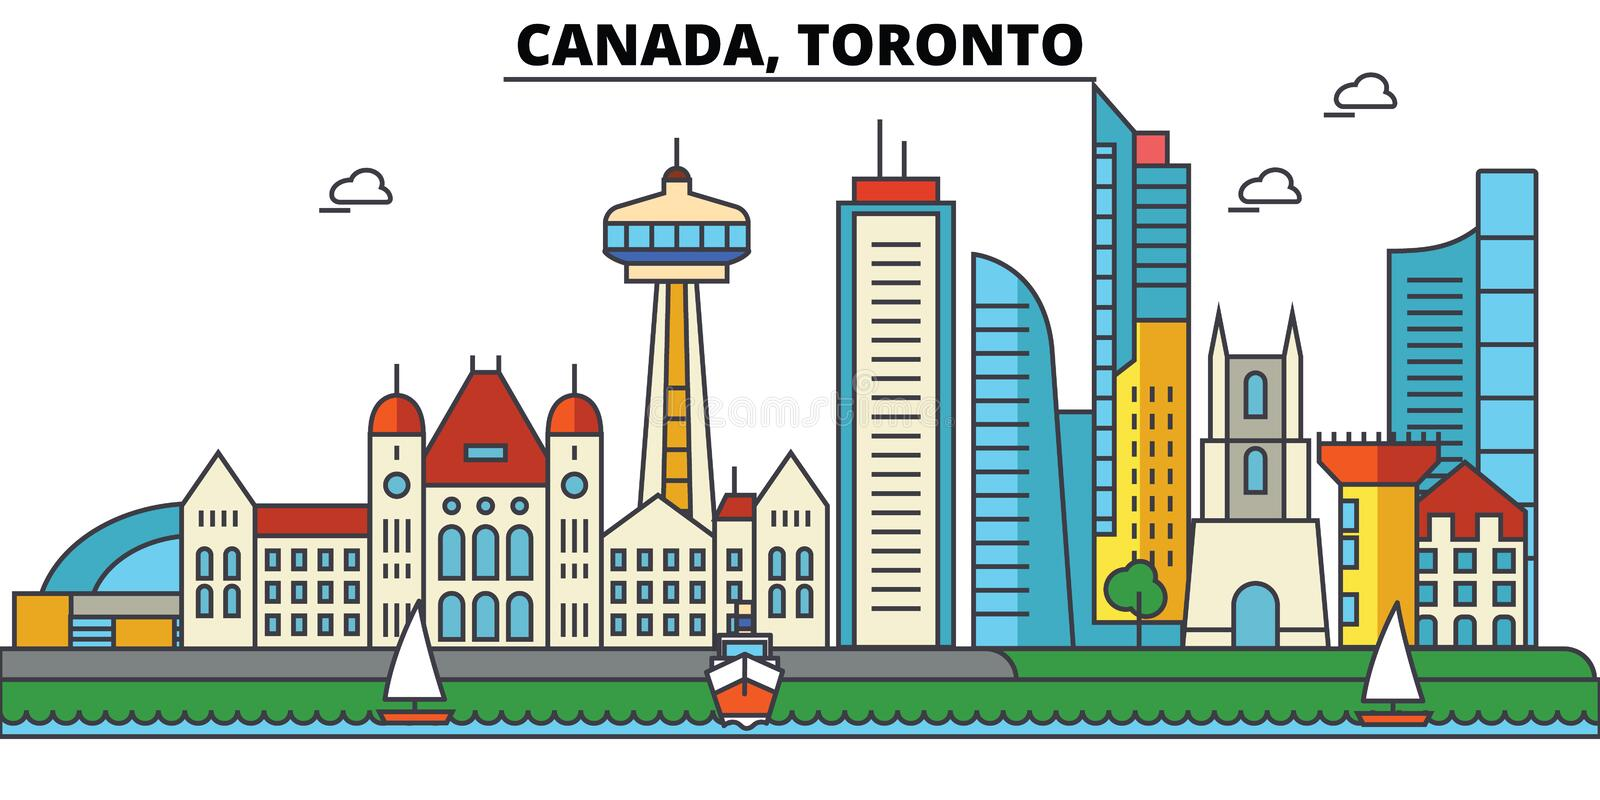 Canada, Toronto. City skyline architecture royalty free illustration